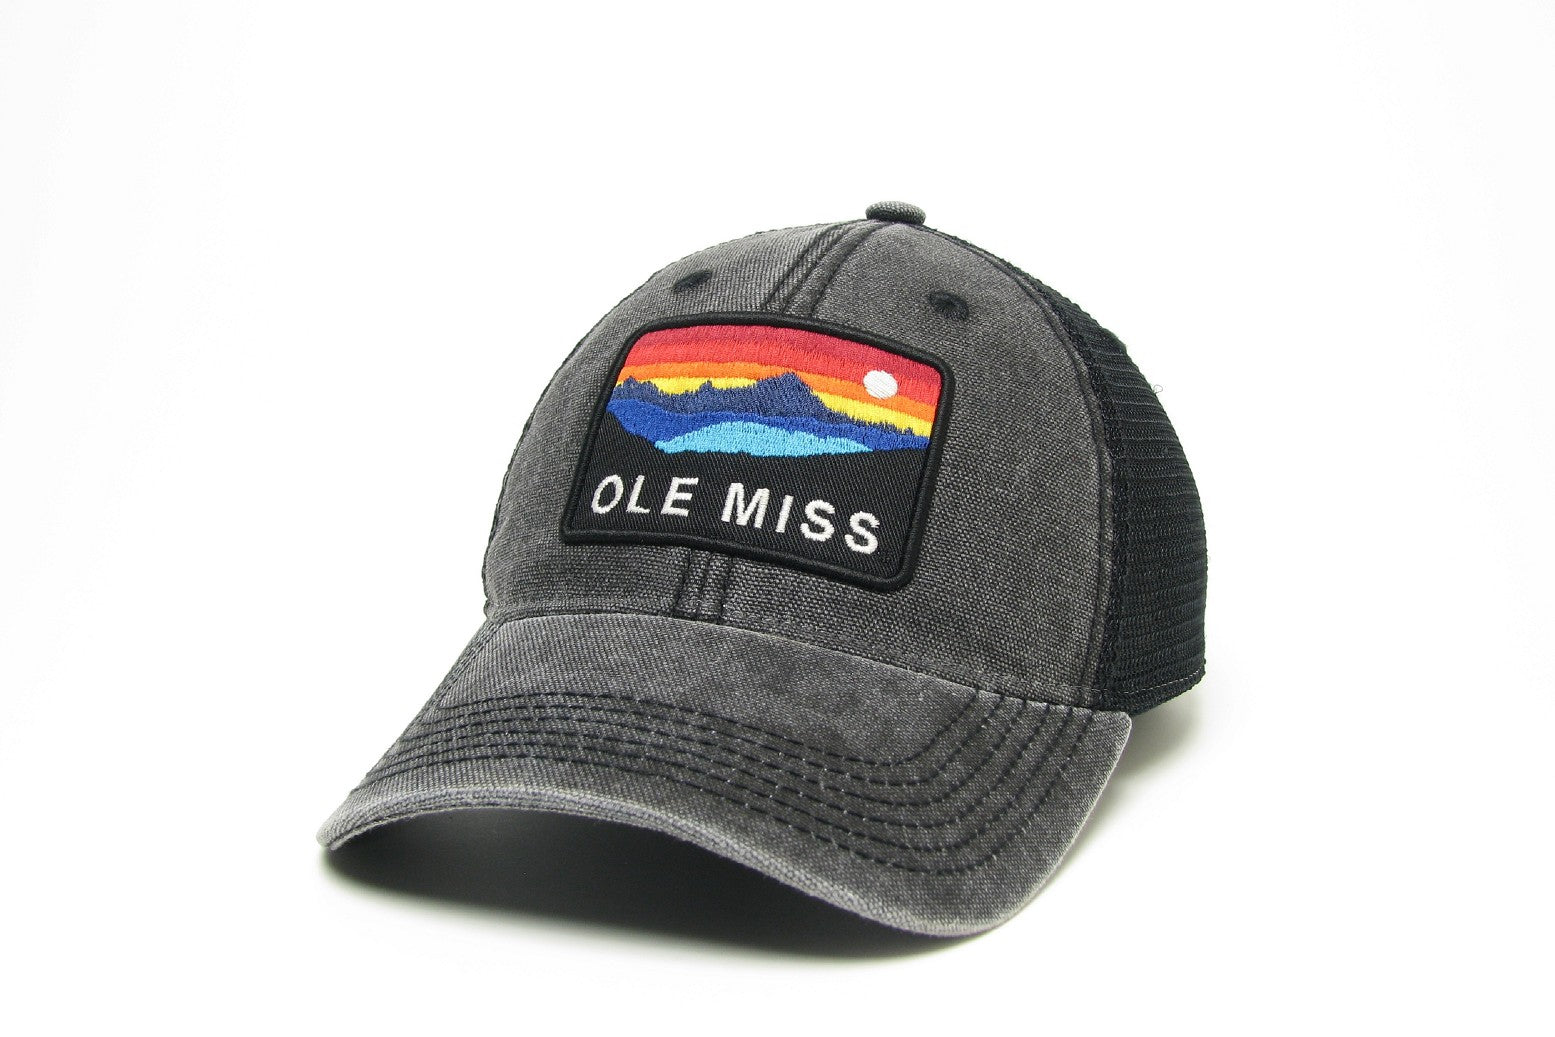 Legacy Black Ole Miss Mesh Hat